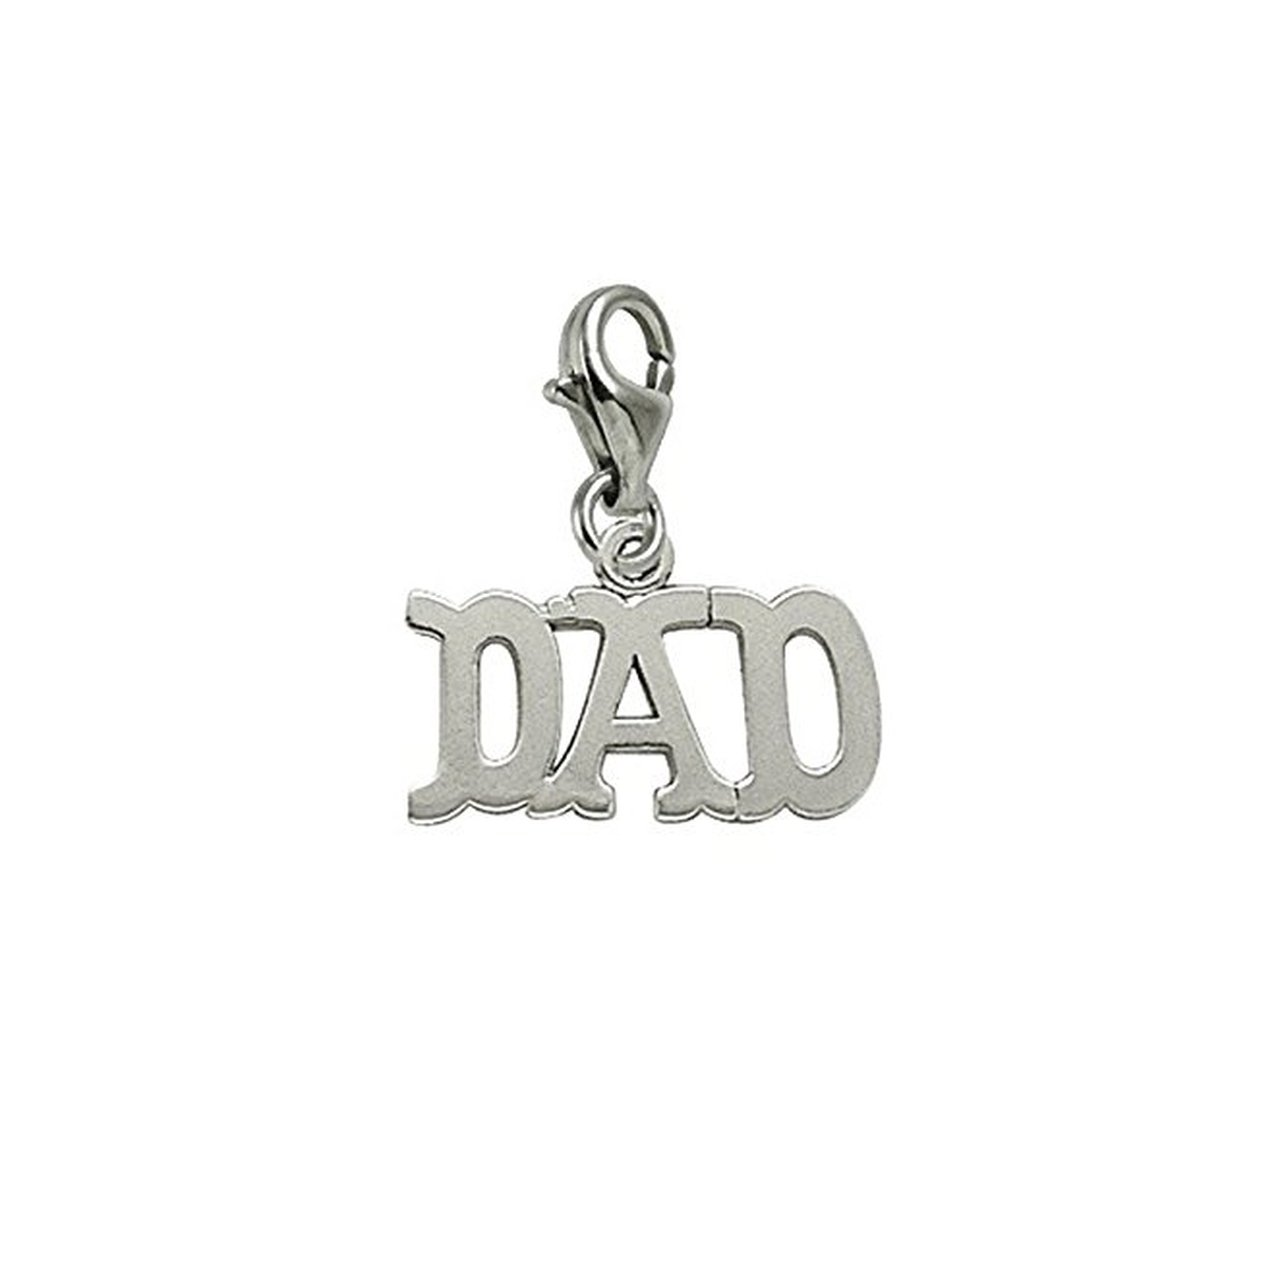 Charms for Bracelets and Necklaces Dad Charm With Lobster Claw Clasp